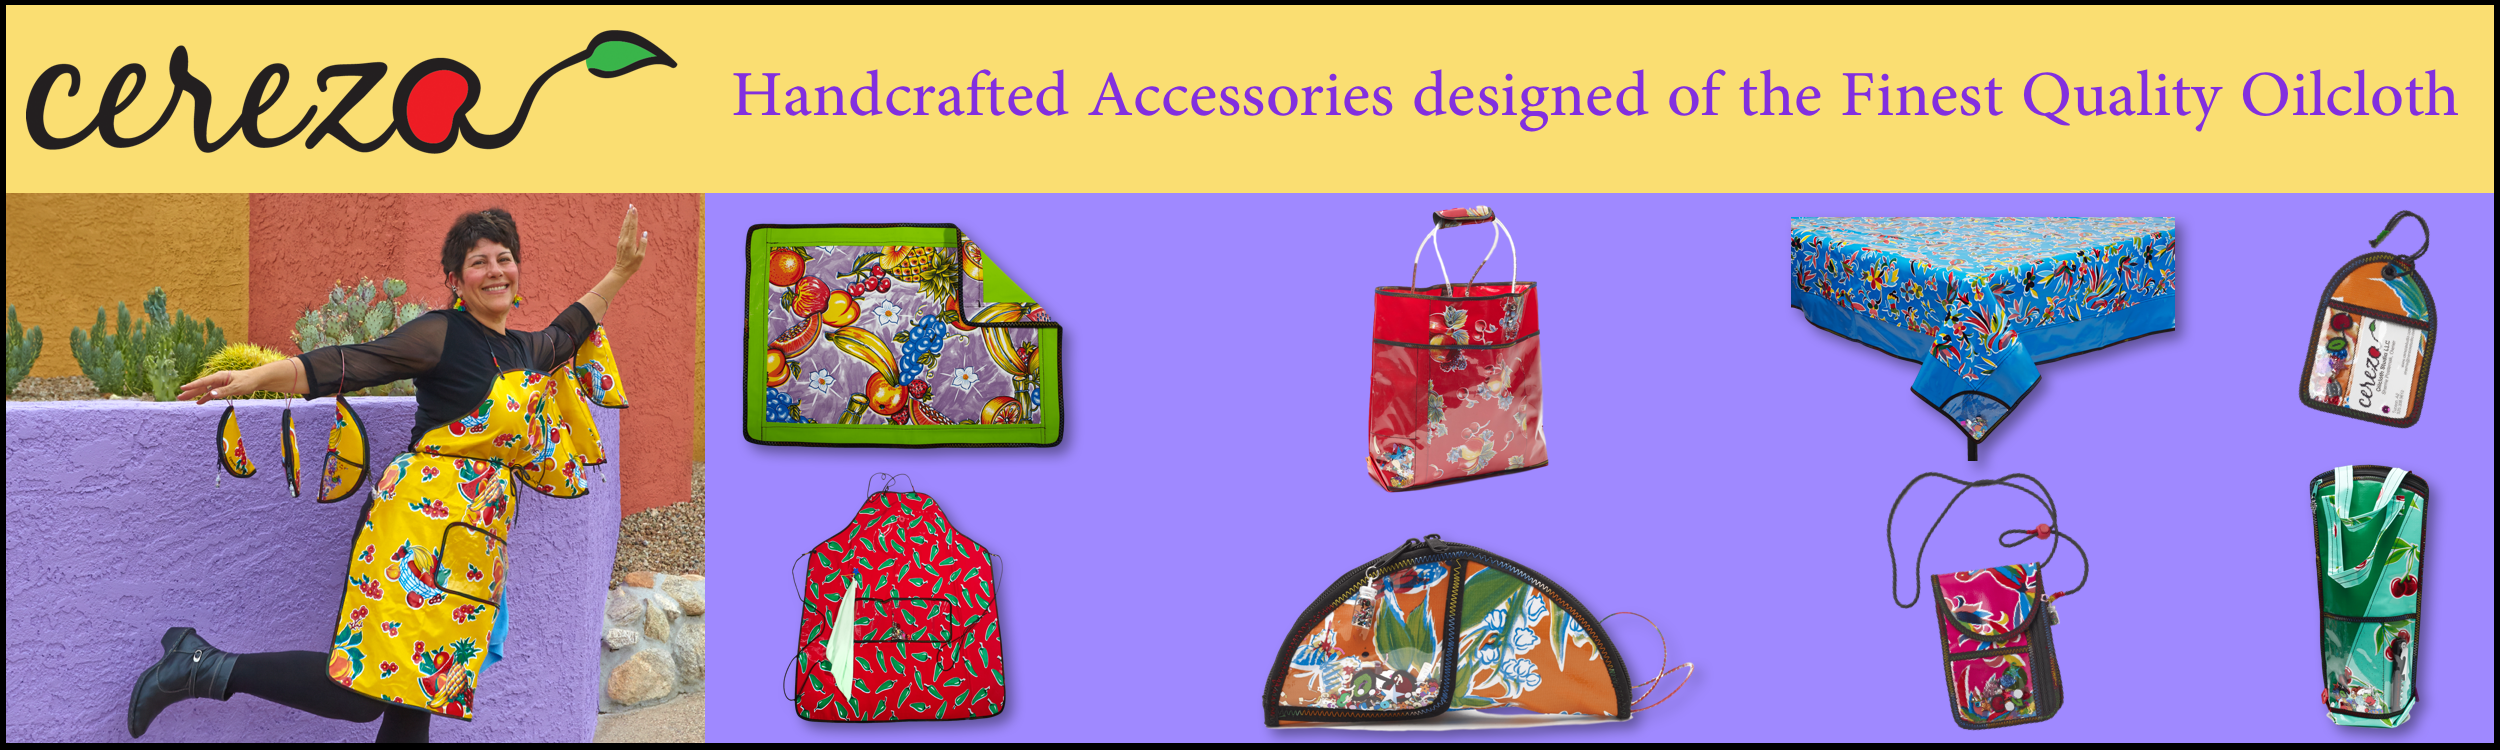 Mexican Oilcloth Aprons, Bags, Totes, Tablecloths, Placemats, Wine bottle carries and more by Cereza Oilcloth Studio.